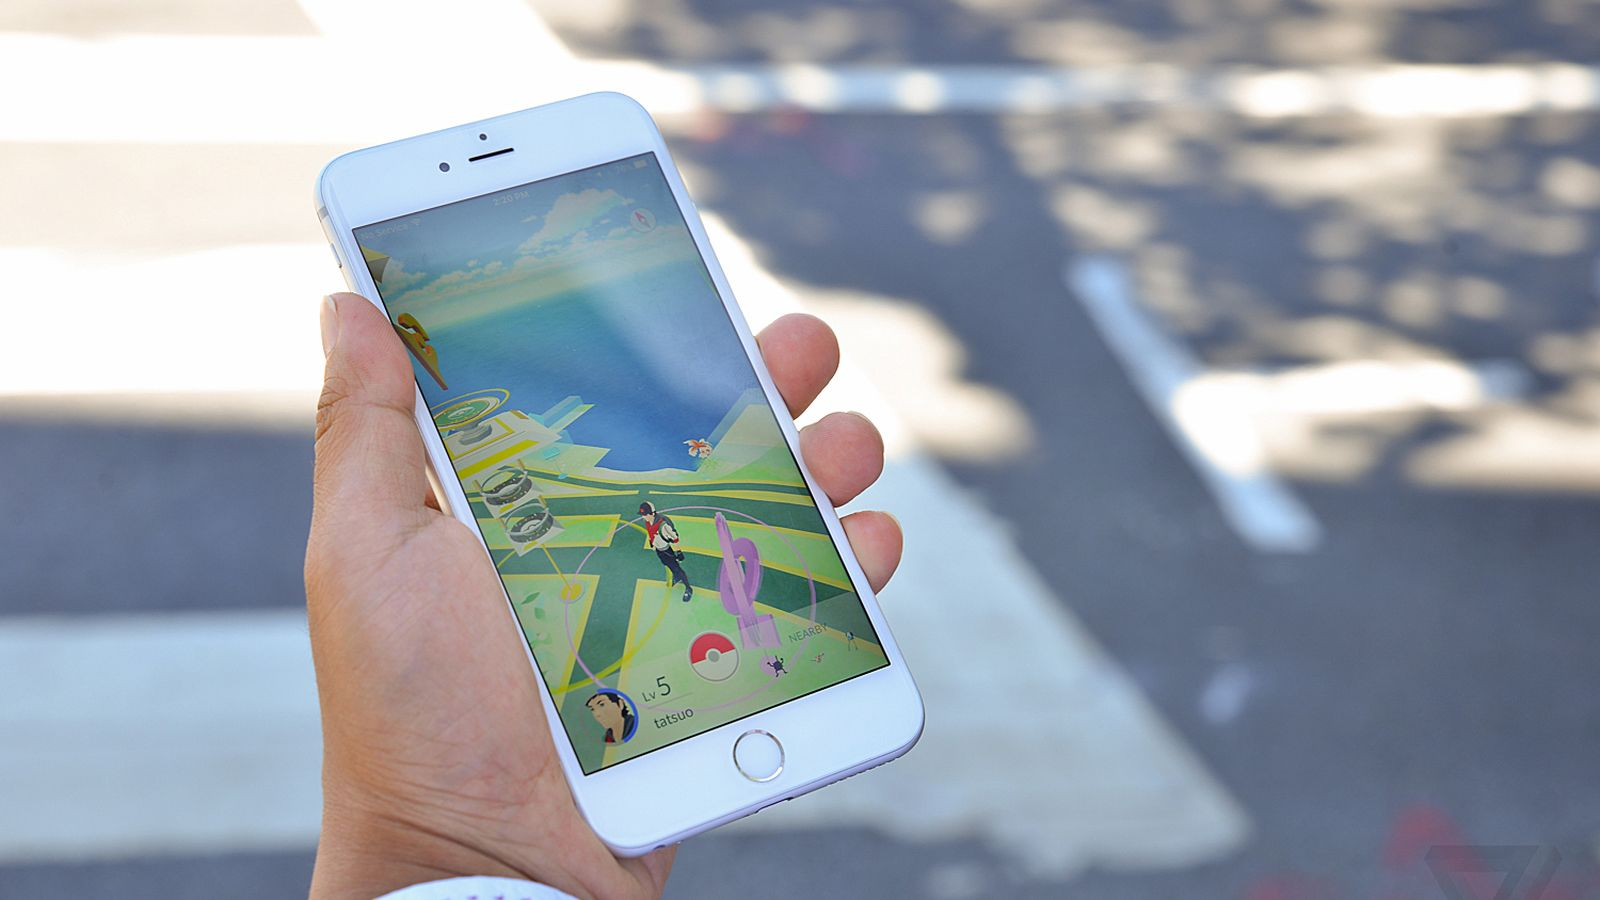 What Happened to Pokémon Go?